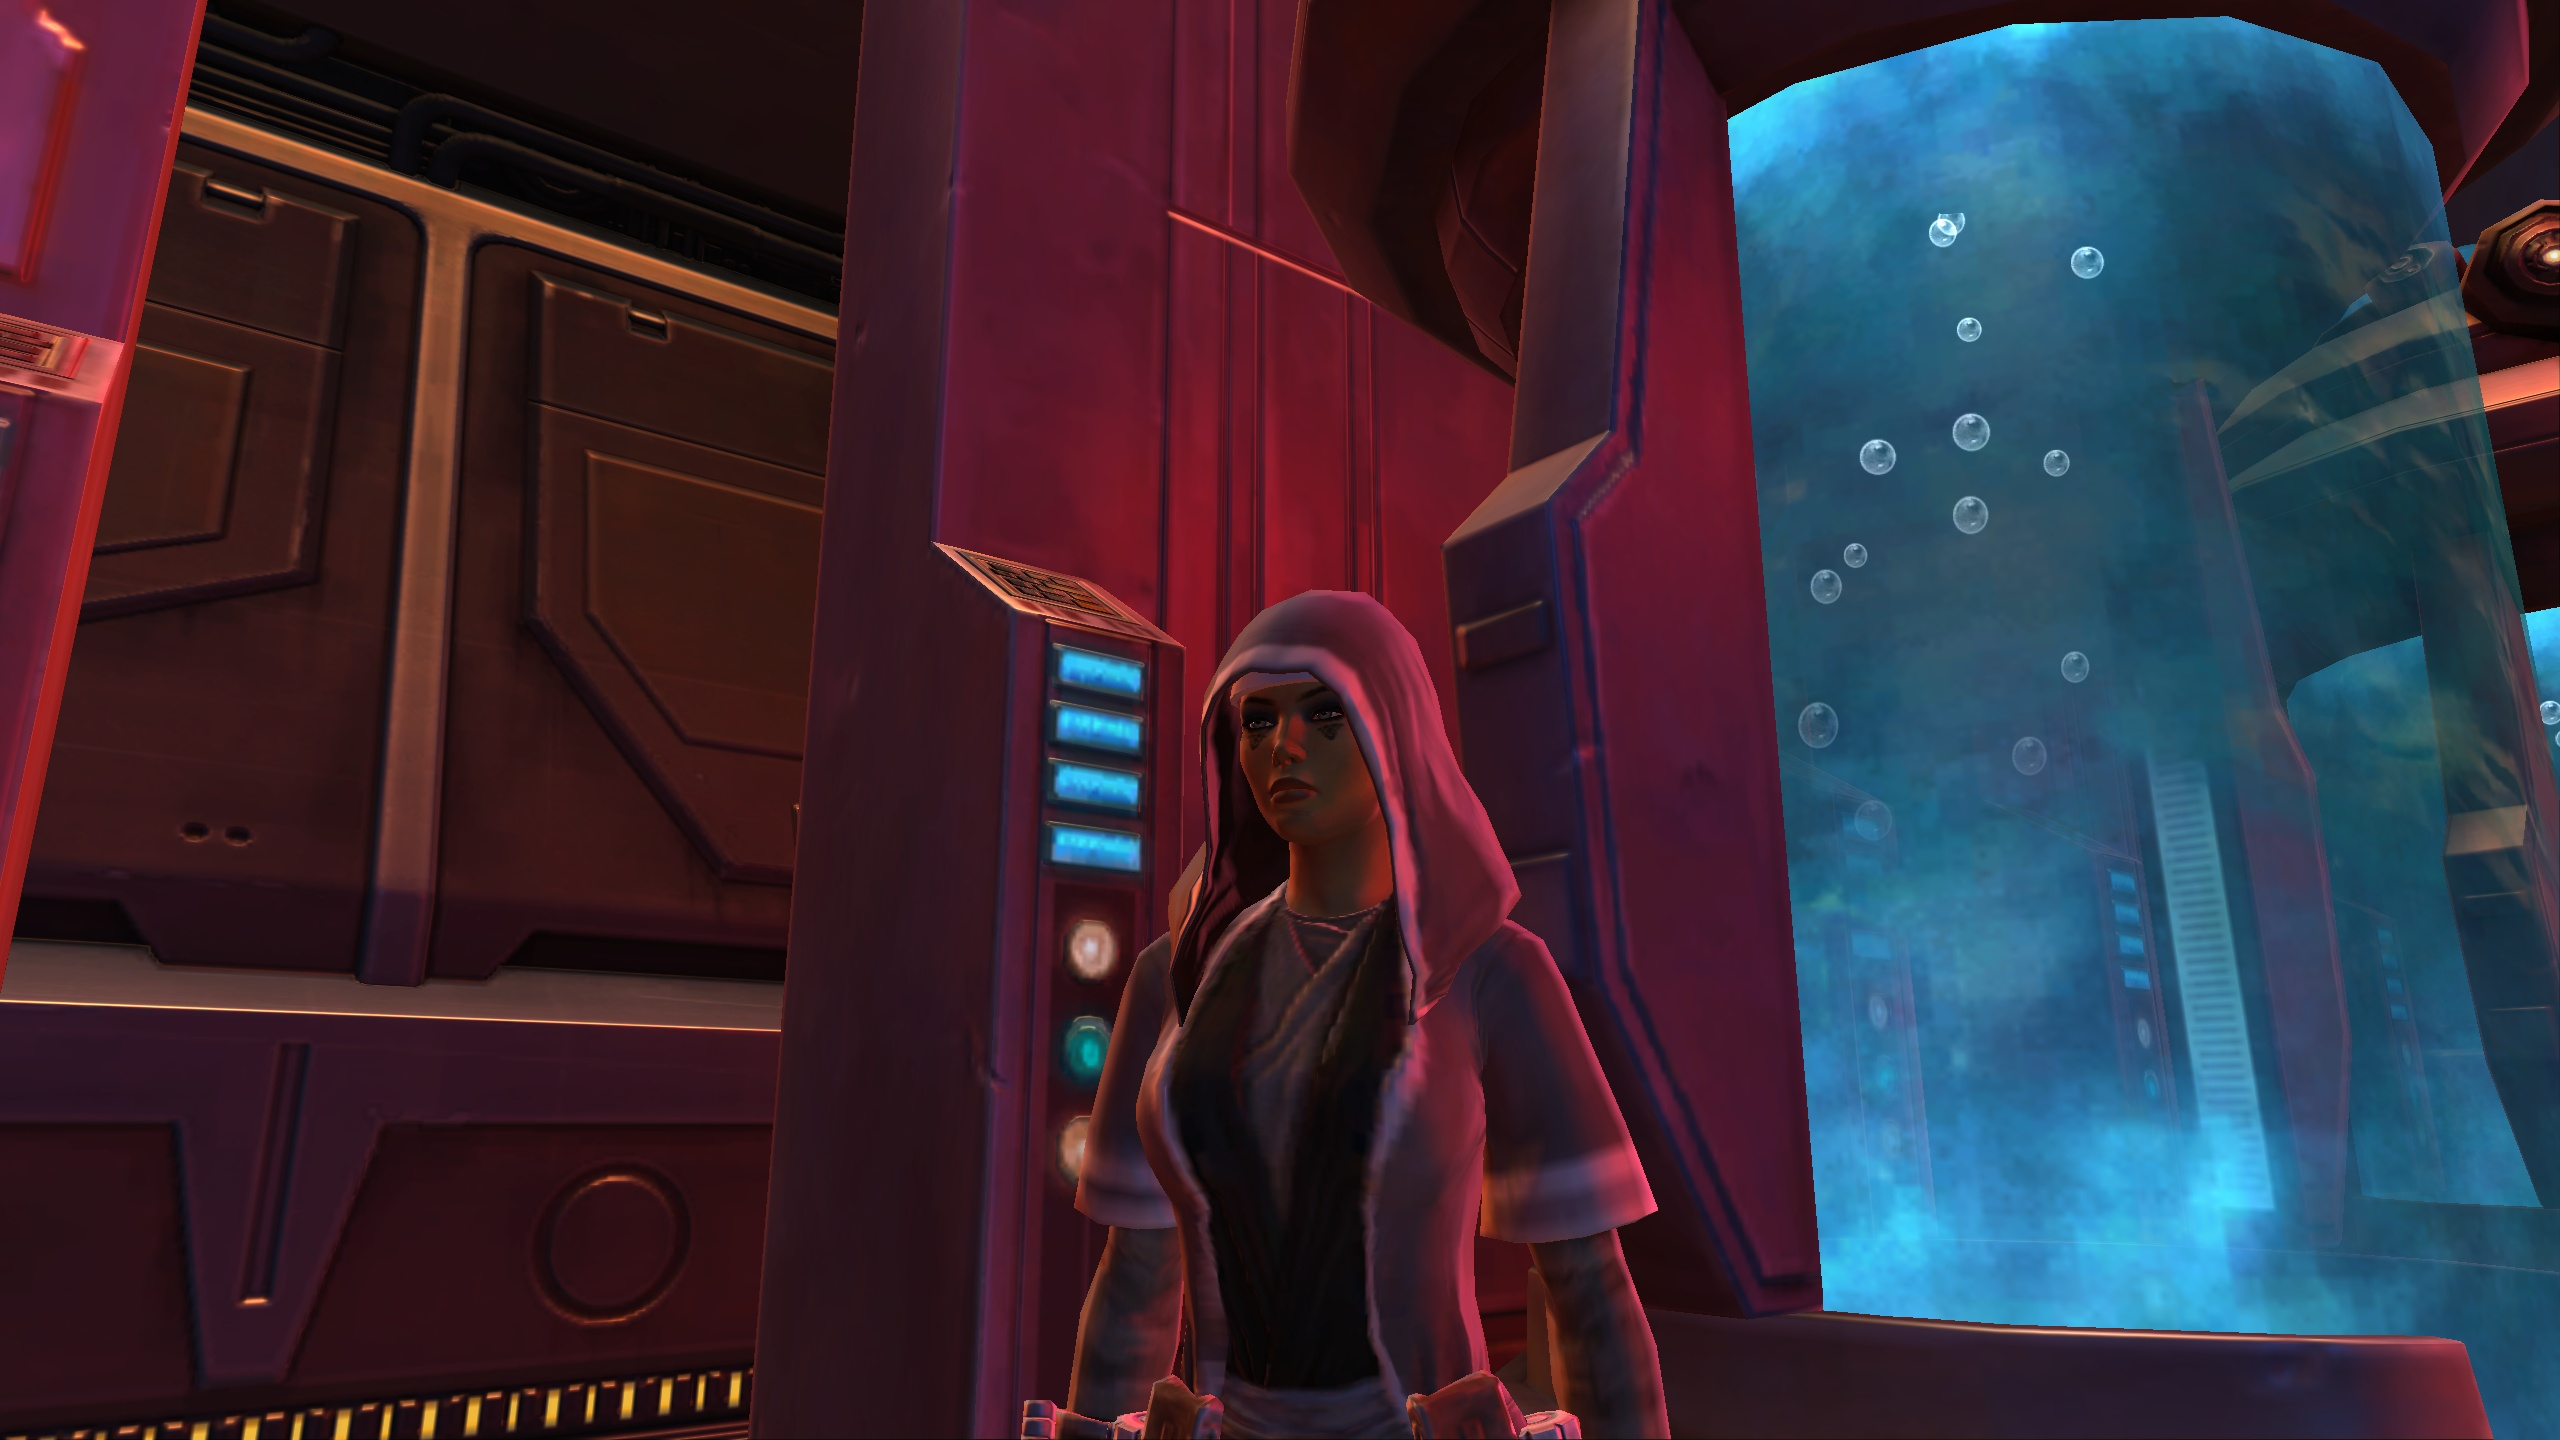 synthweaving   Inquisitor's Roadhouse on wii schematics, star trek schematics, star wars schematics, ps3 schematics,